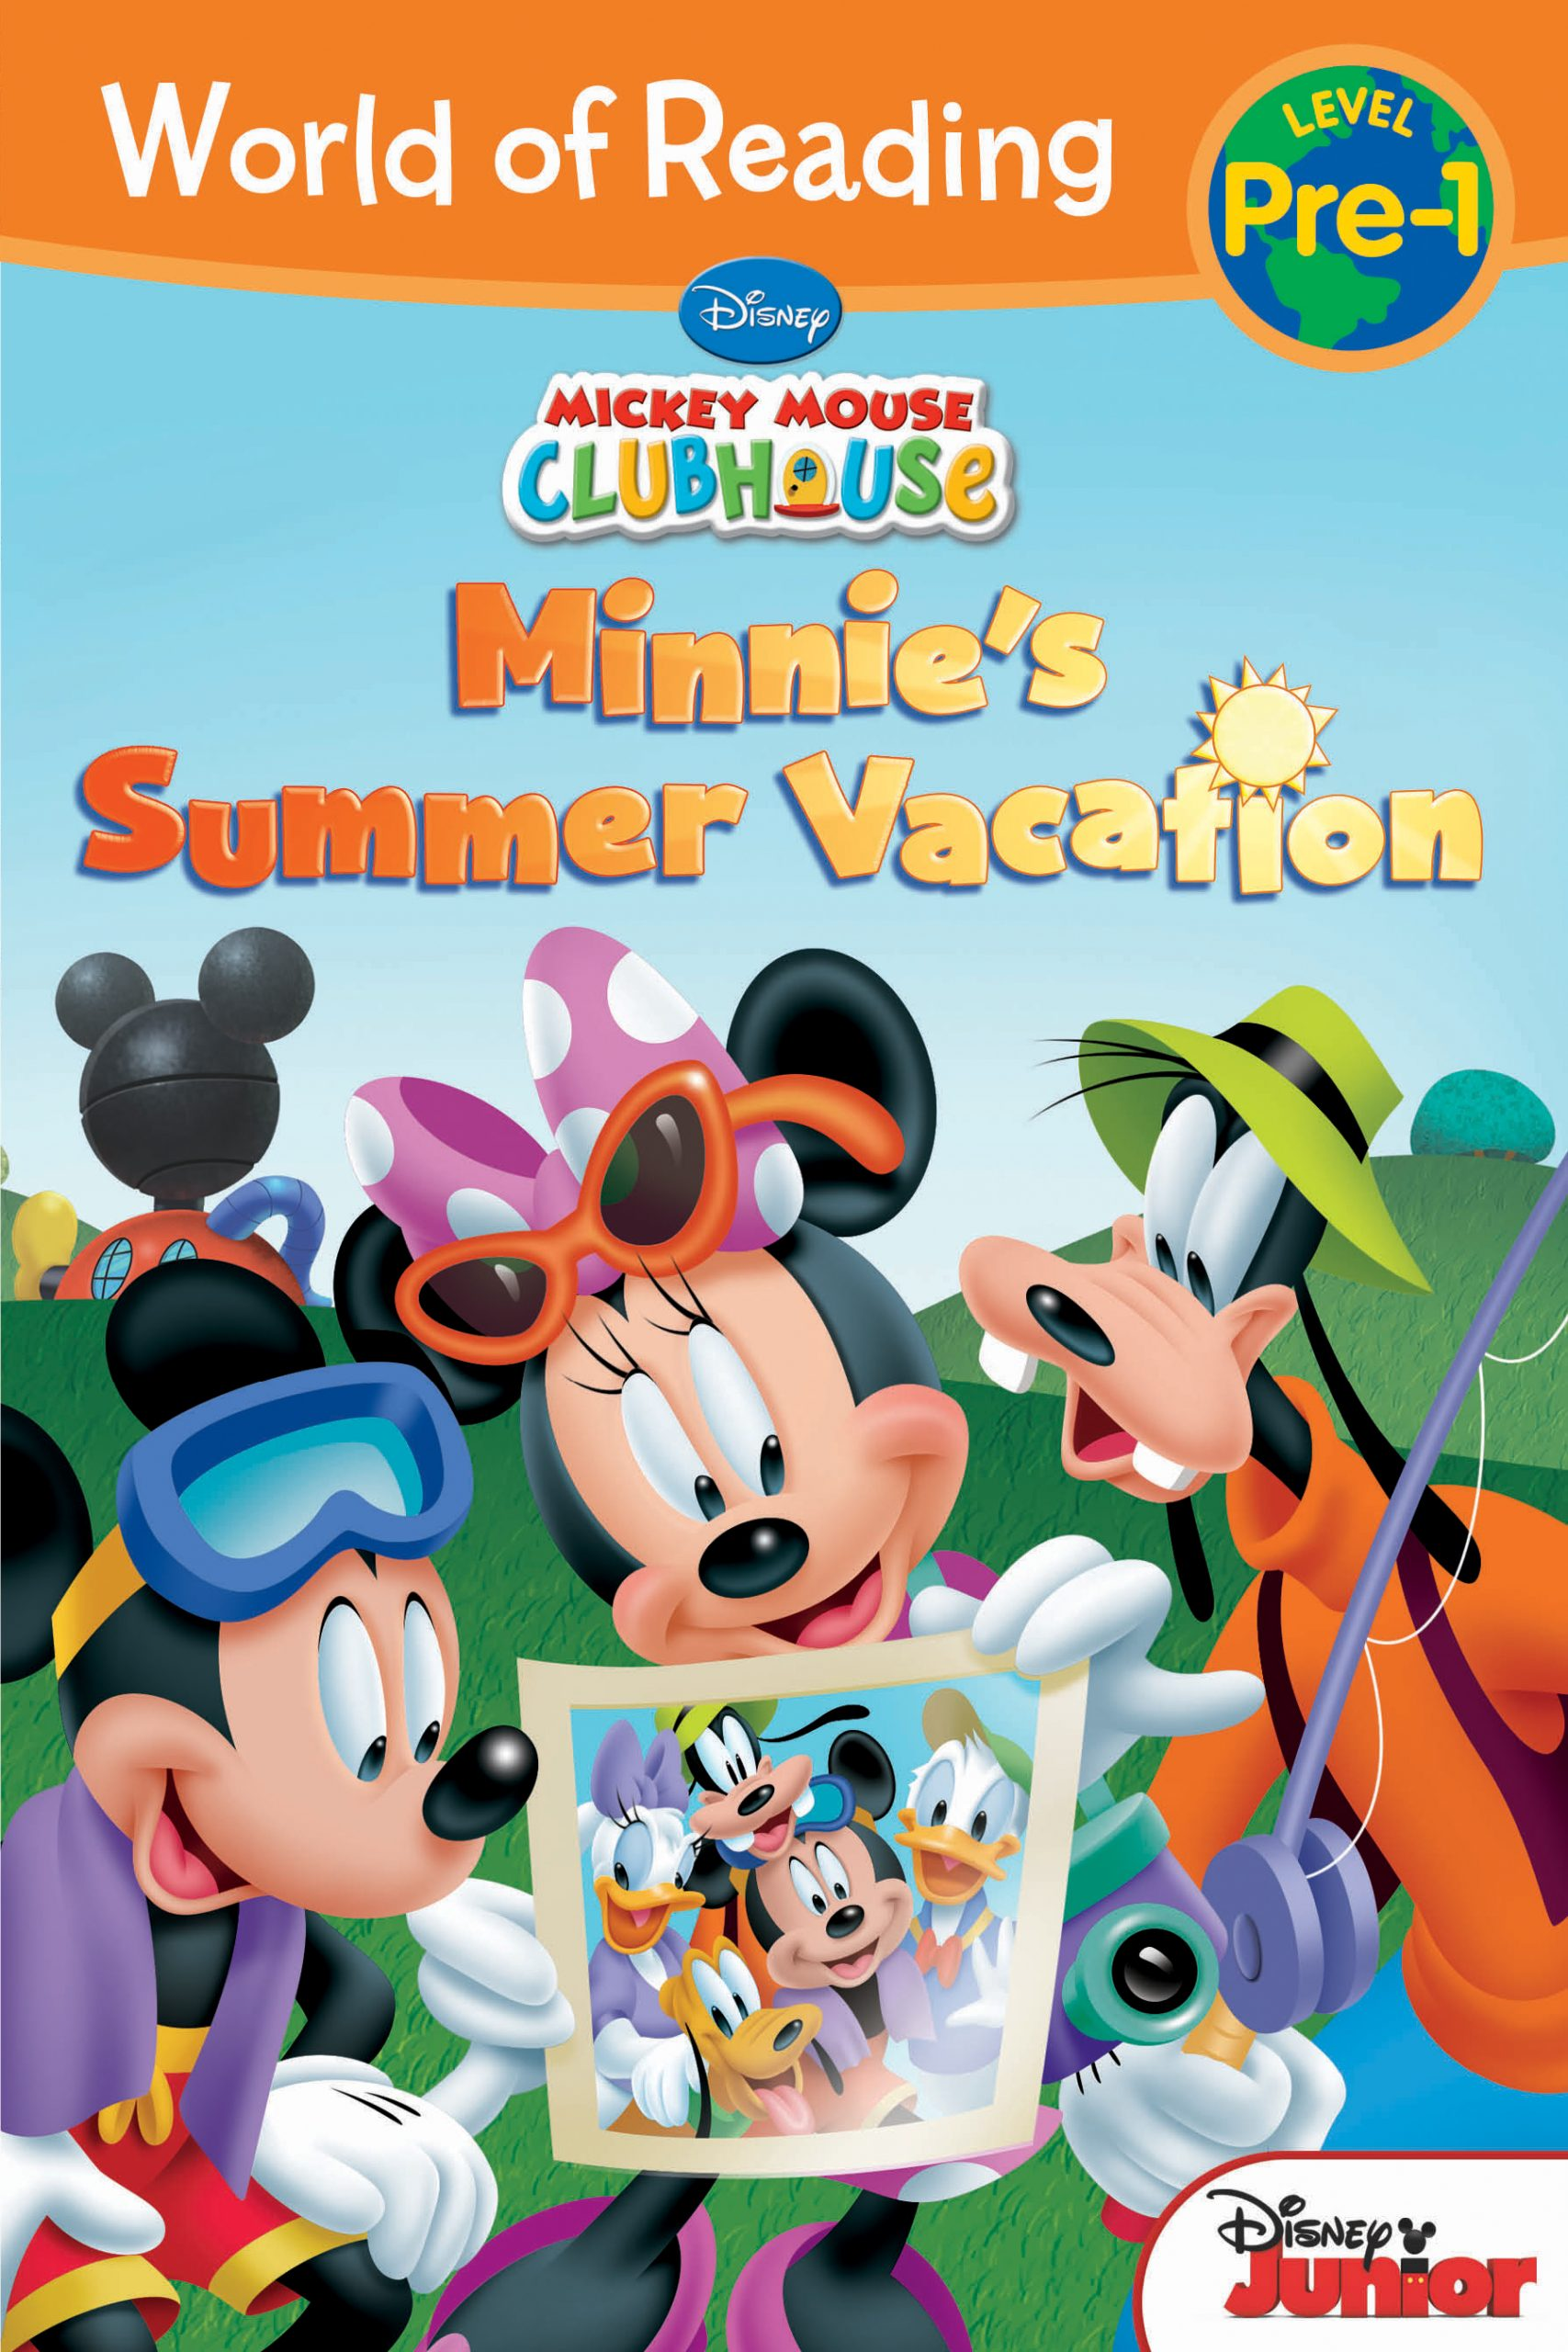 World Of Reading Mickey Mouse Clubhouse Minnie S Summer Vacation Disney Books Disney Publishing Worldwide